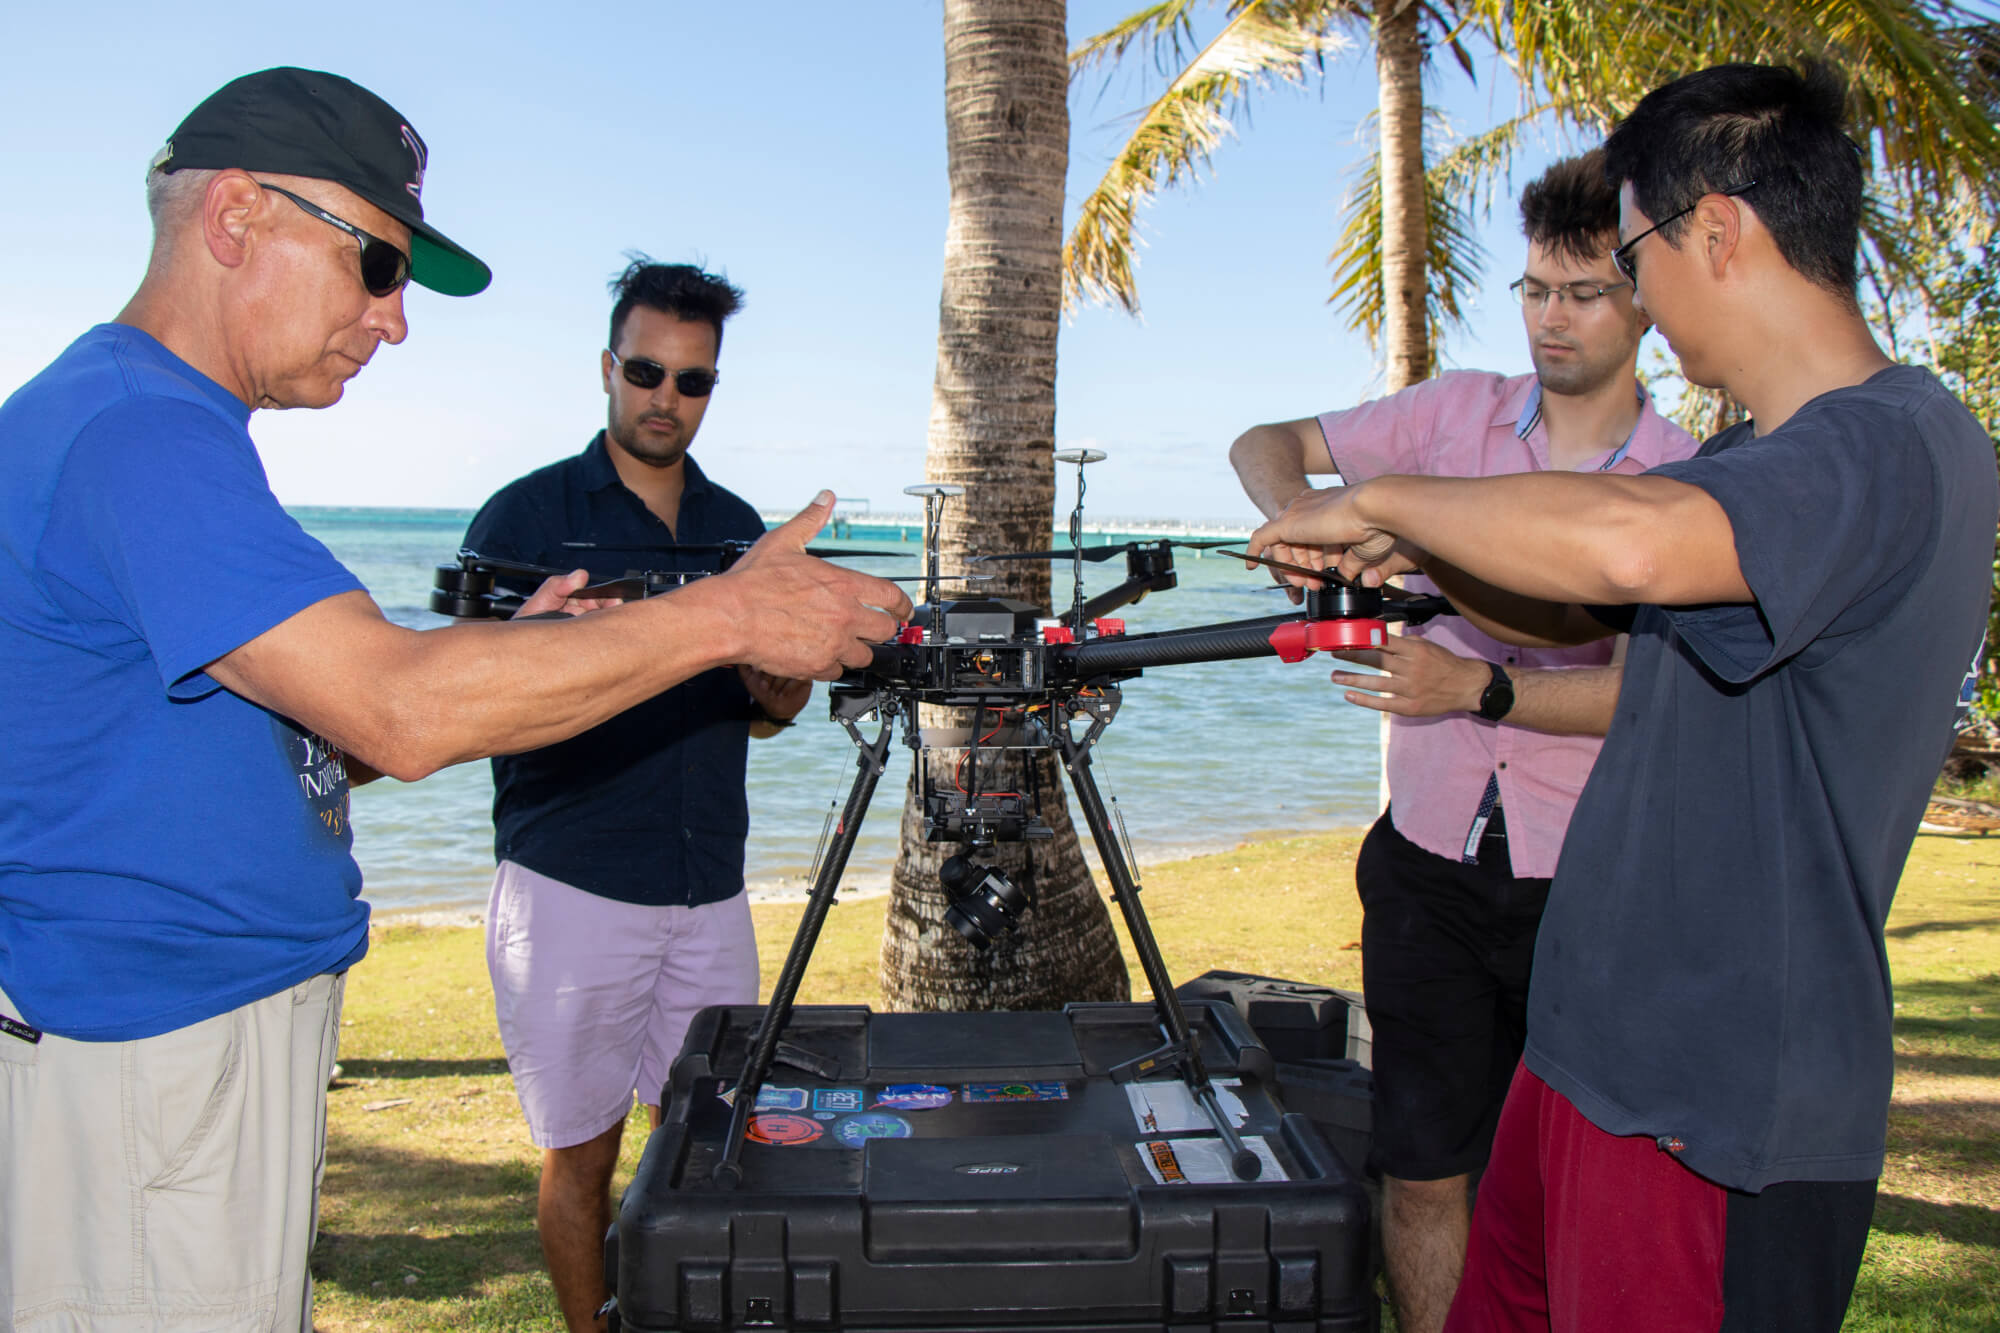 Members of the NASA Ames Laboratory set up an unmanned aerial vehicle